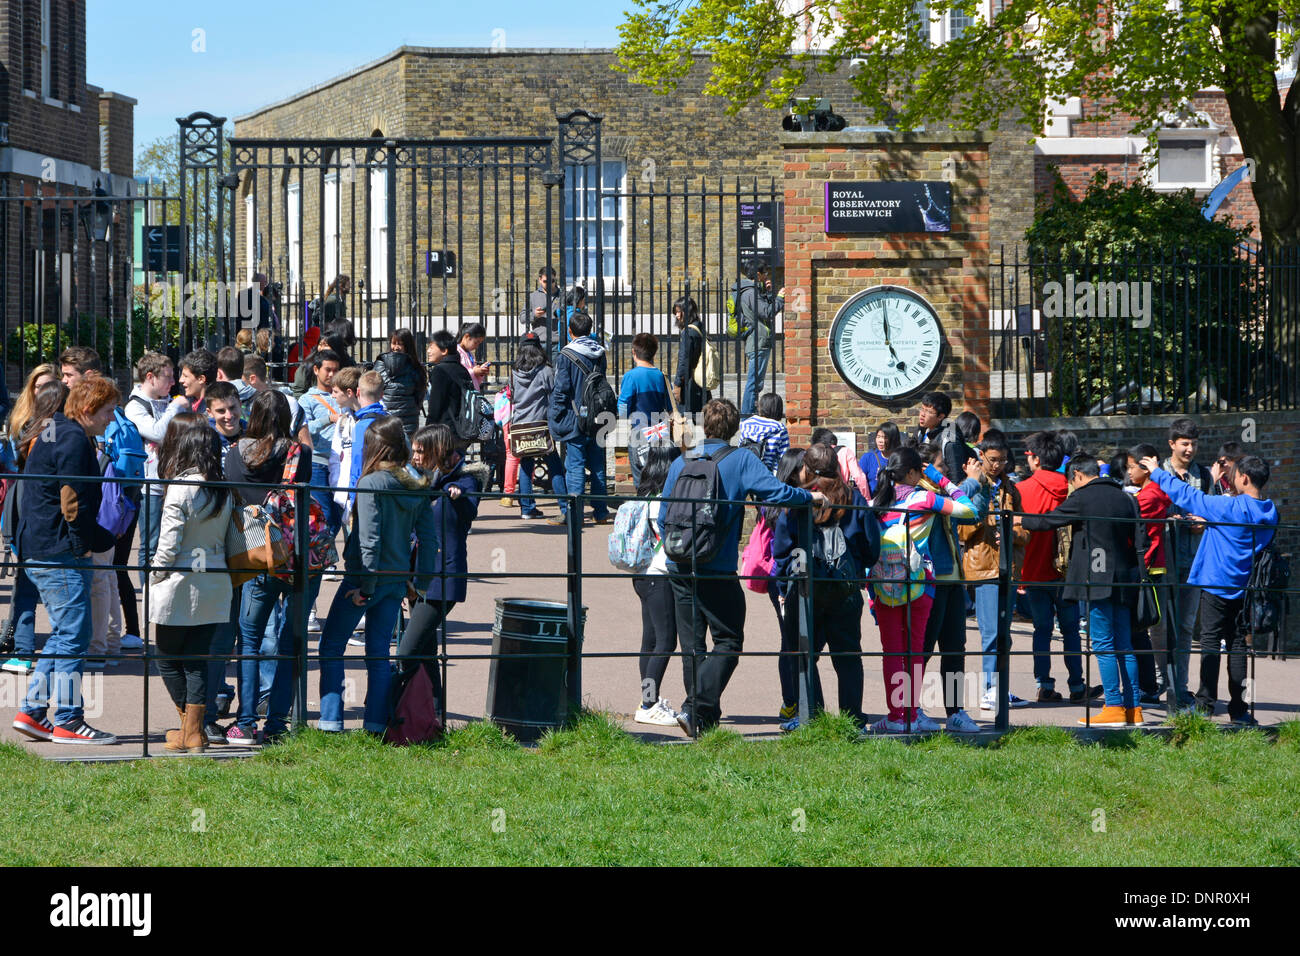 School children students some on trips from abroad on organised school college visits to the Royal Greenwich Observatory Greenwich London England UK - Stock Image